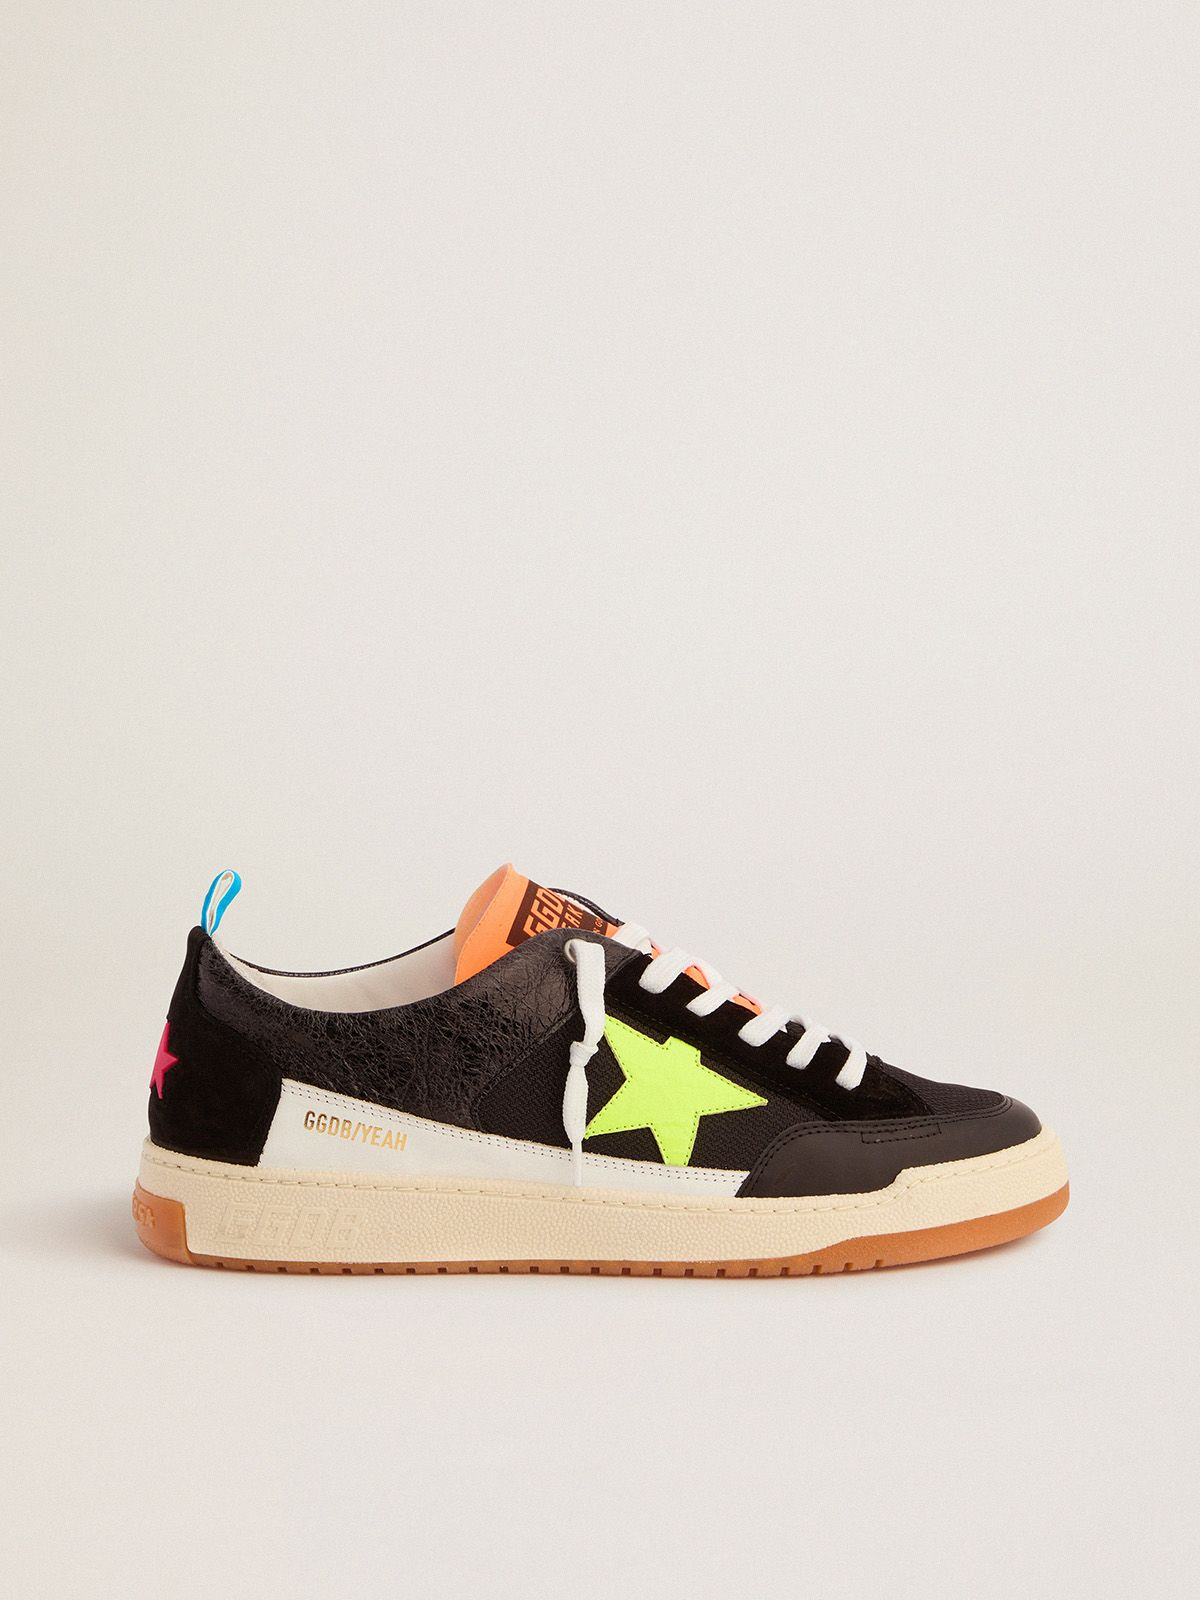 Men's black Yeah sneakers with fluorescent yellow star